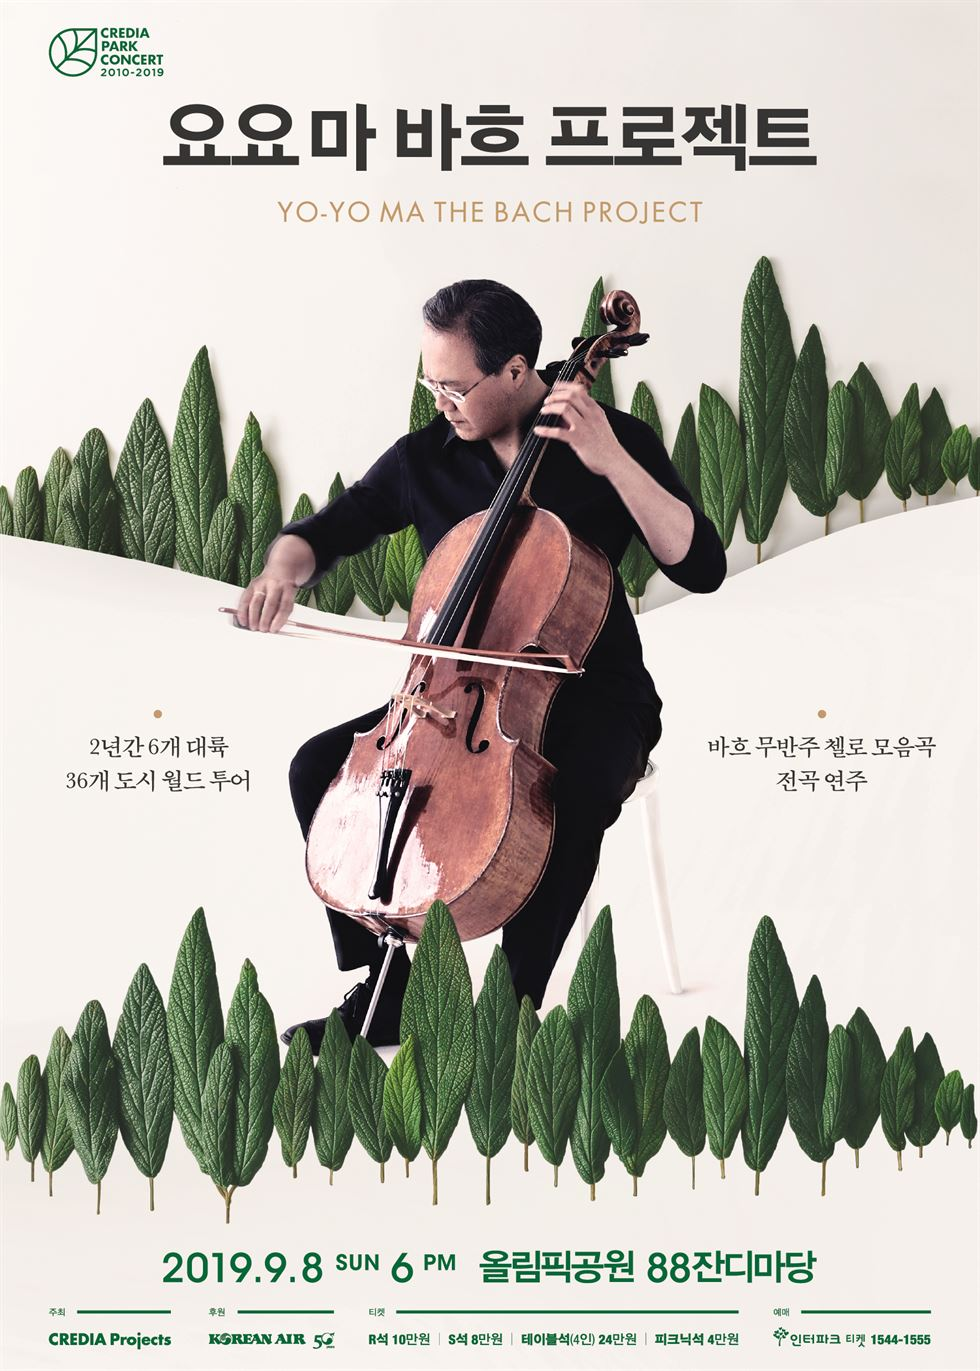 Yo-Yo Ma's is performing Bach's 'Six Cello Suites for Solo Cello' in 36 locations on six continents over two years. He is set to perform in Seoul on Sept. 8. Courtesy of Jason Bell